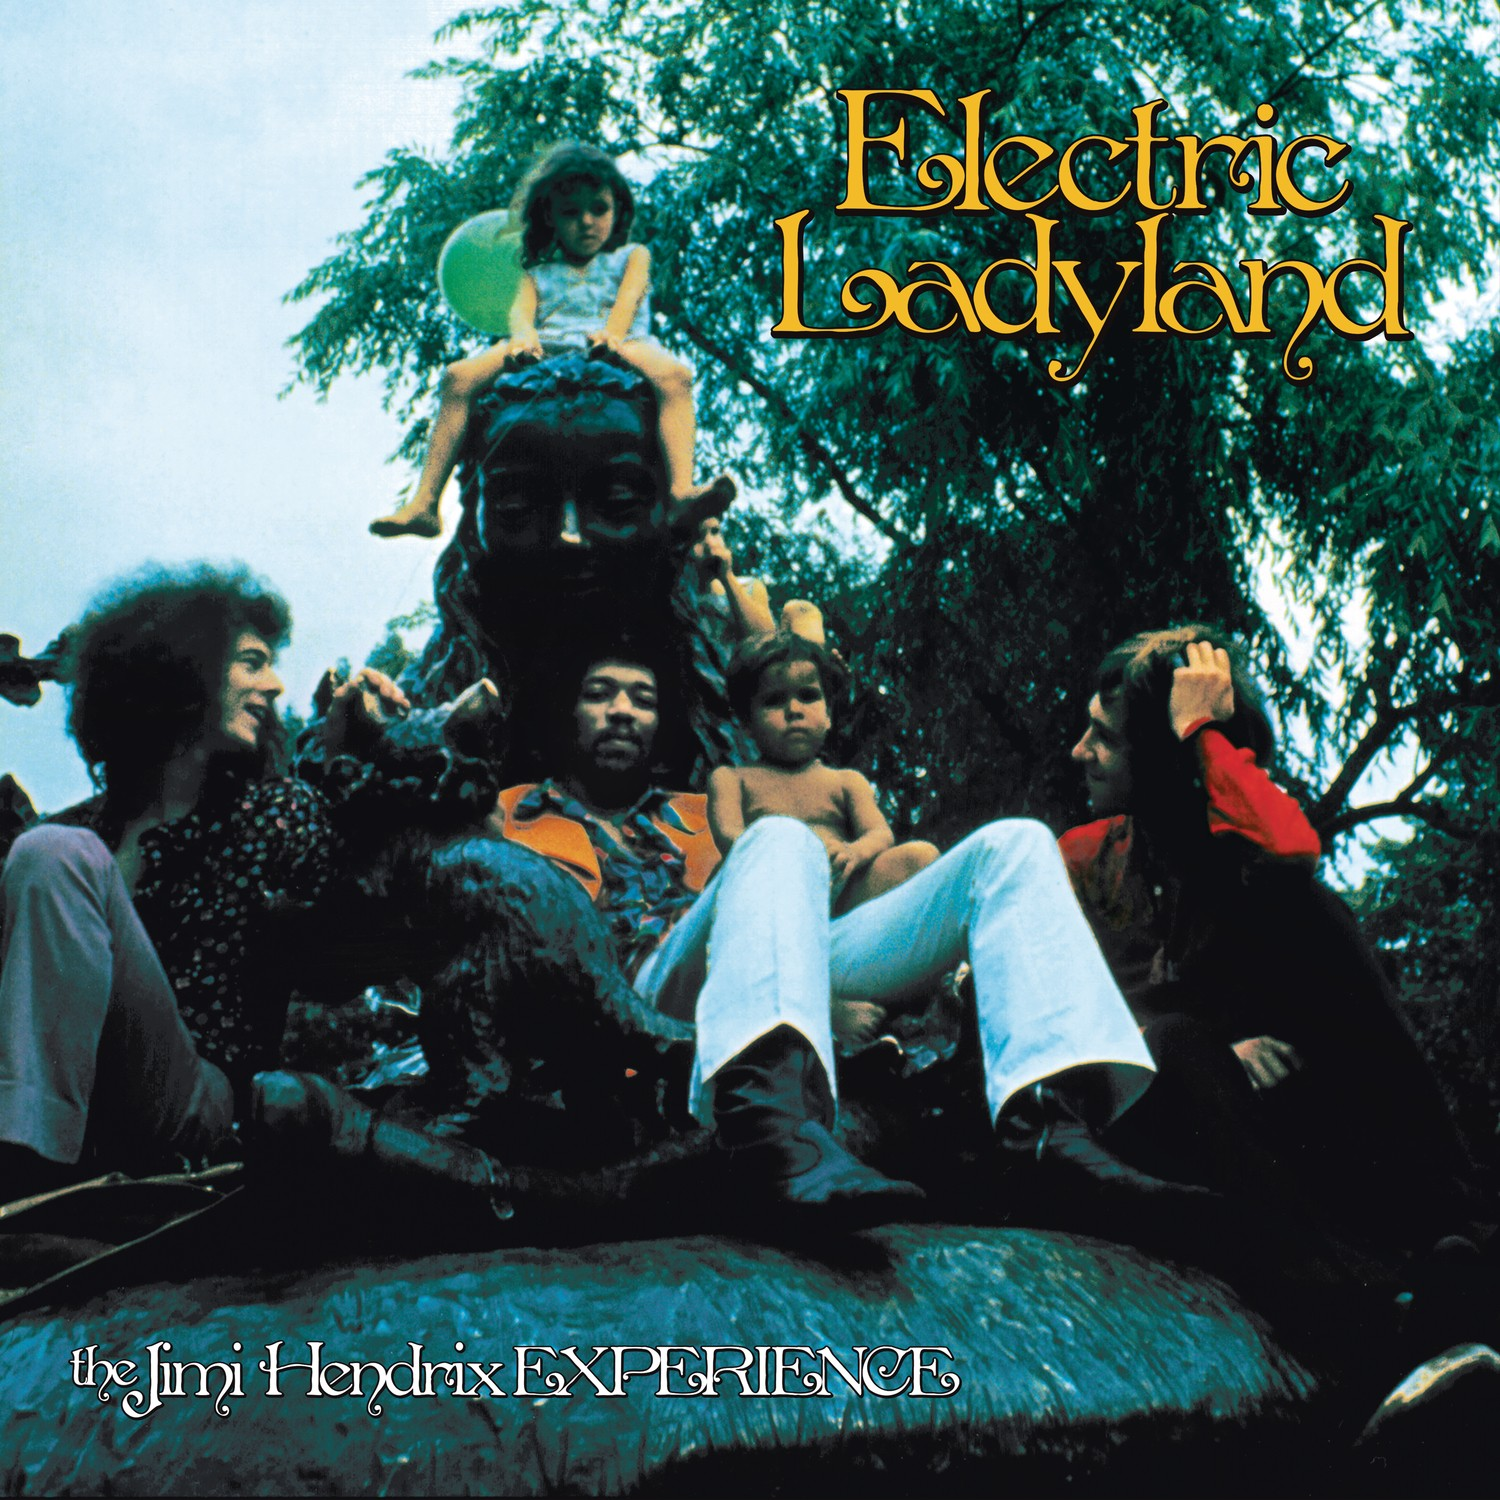 Jimi Hendrix - Electric Ladyland: 50th Anniversary Deluxe Edition Boxset Vinyl